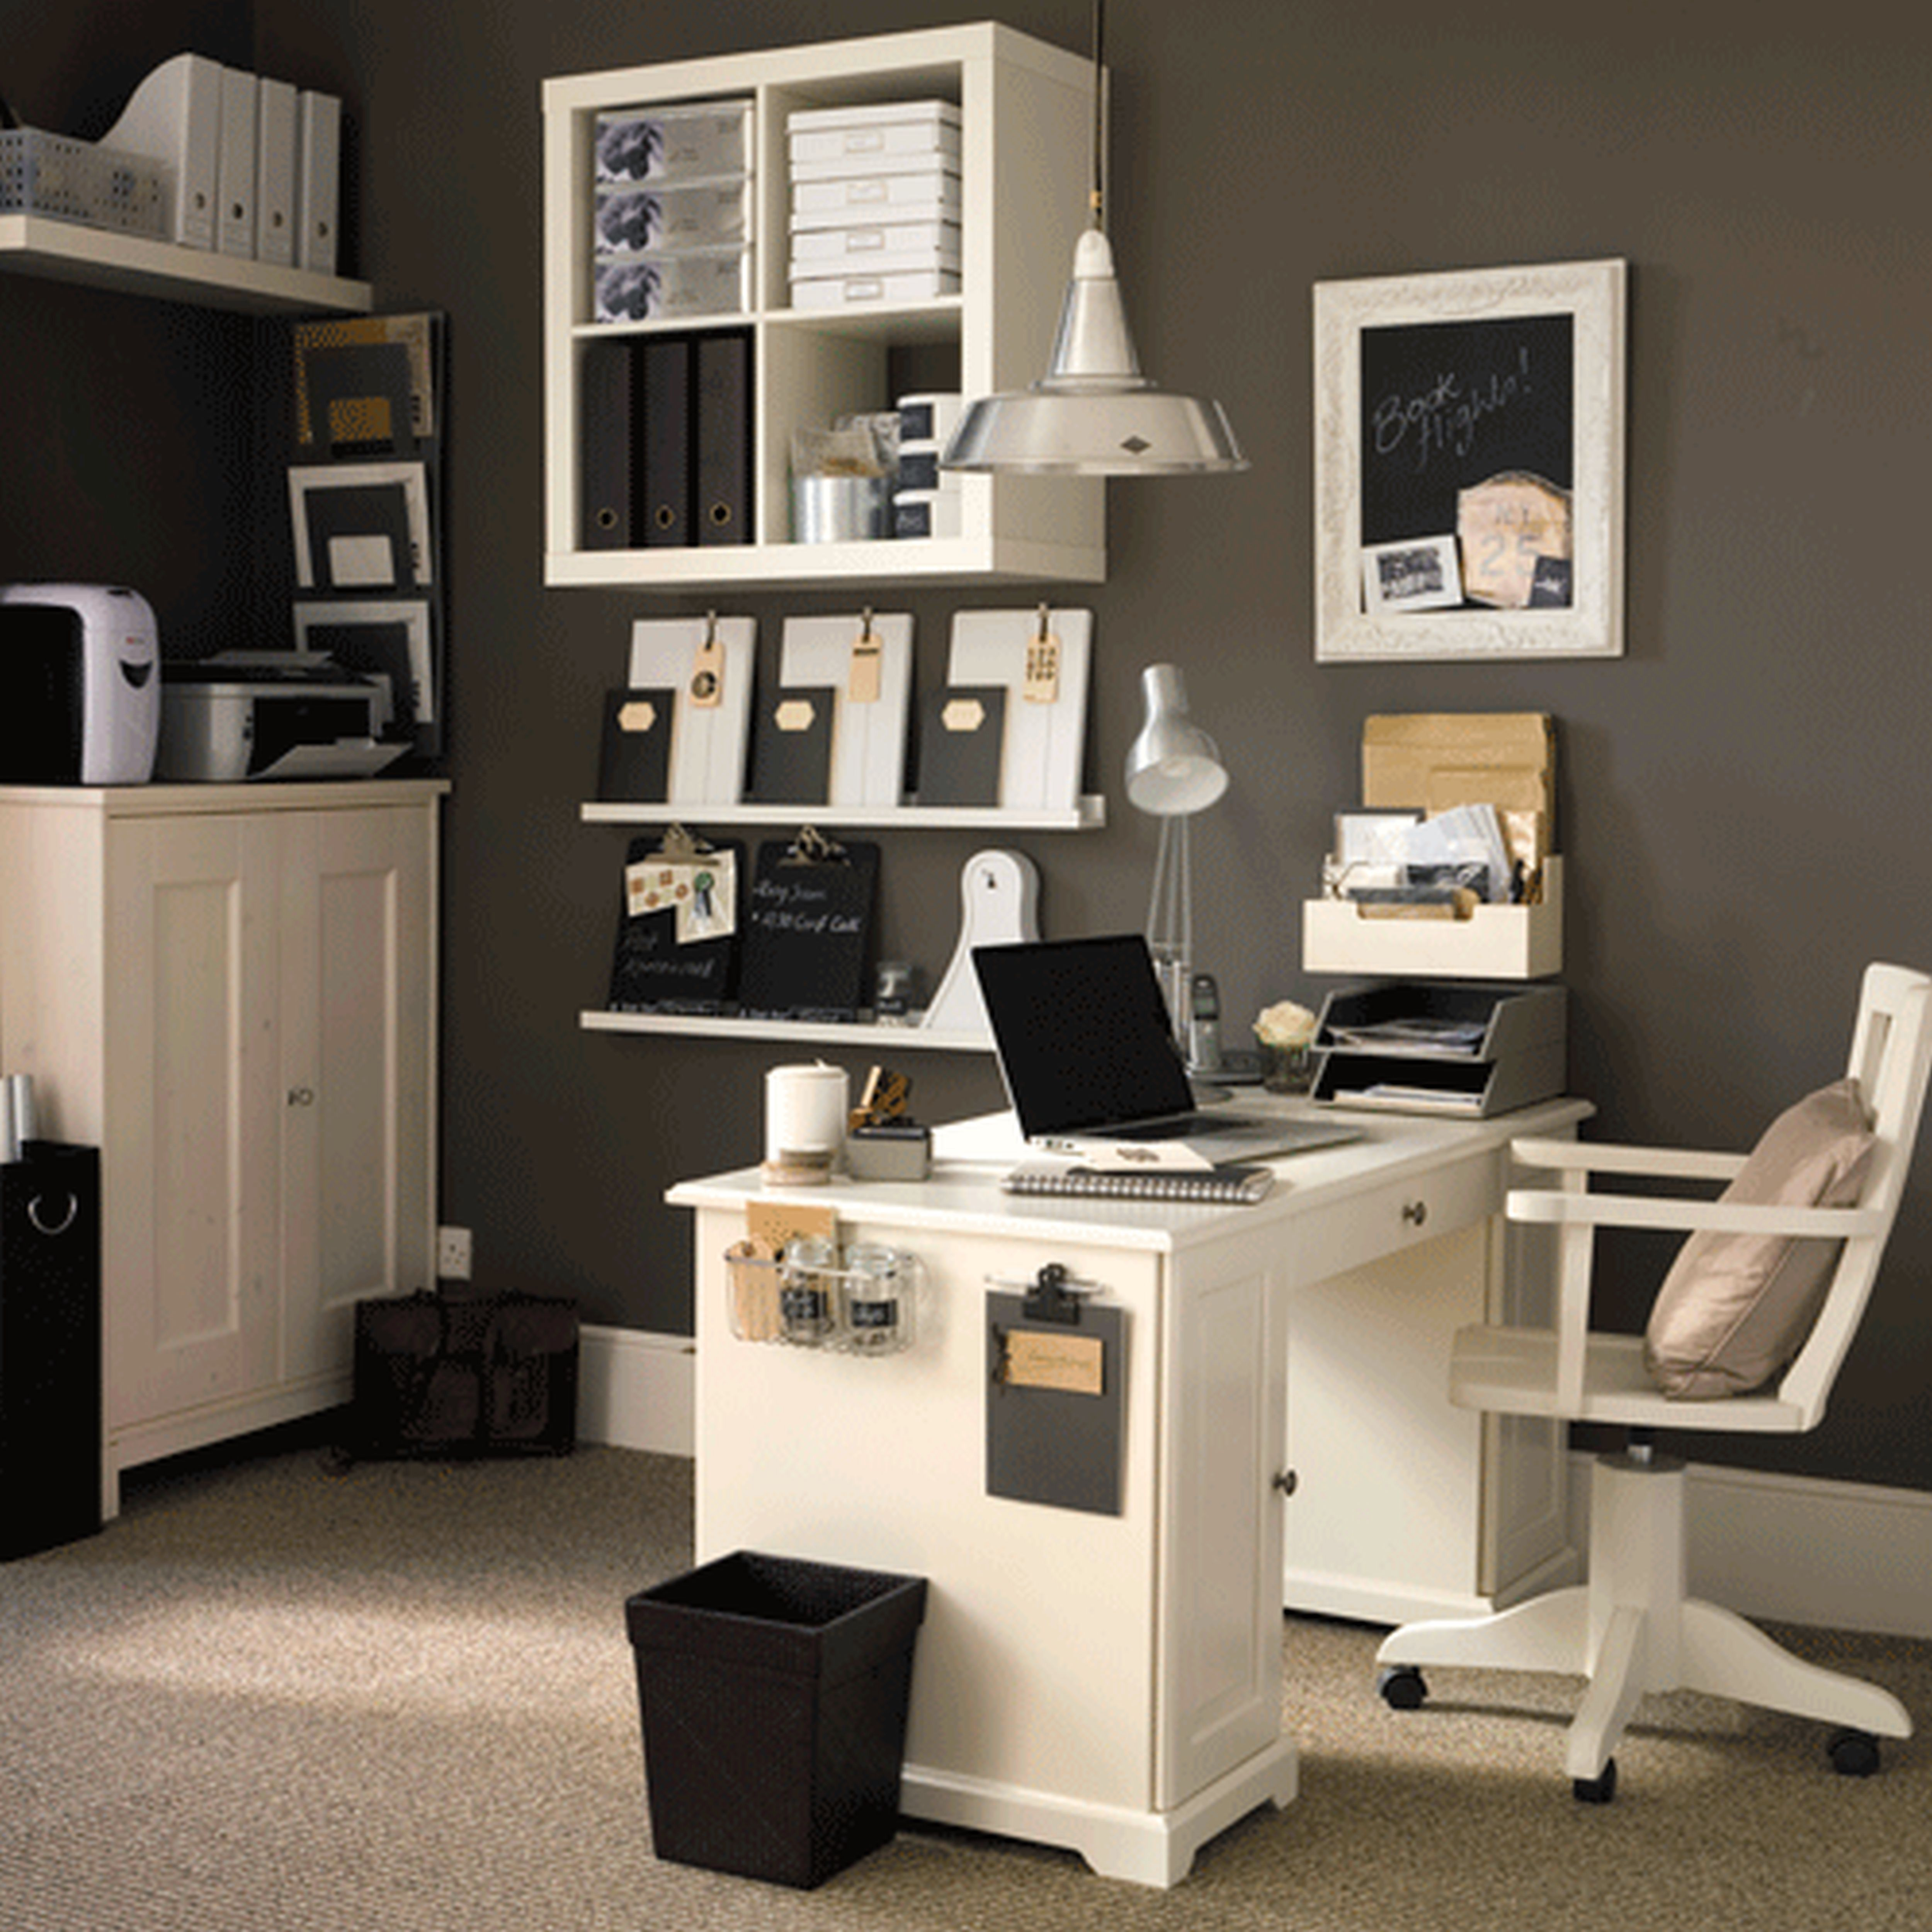 25 Stunning Modern Home Office Designs   Pinterest   Office designs     Here are few decorating tips with images that can help you achieve an  attractive modern home office  Checkout 25 Stunning Modern Home Office  Designs